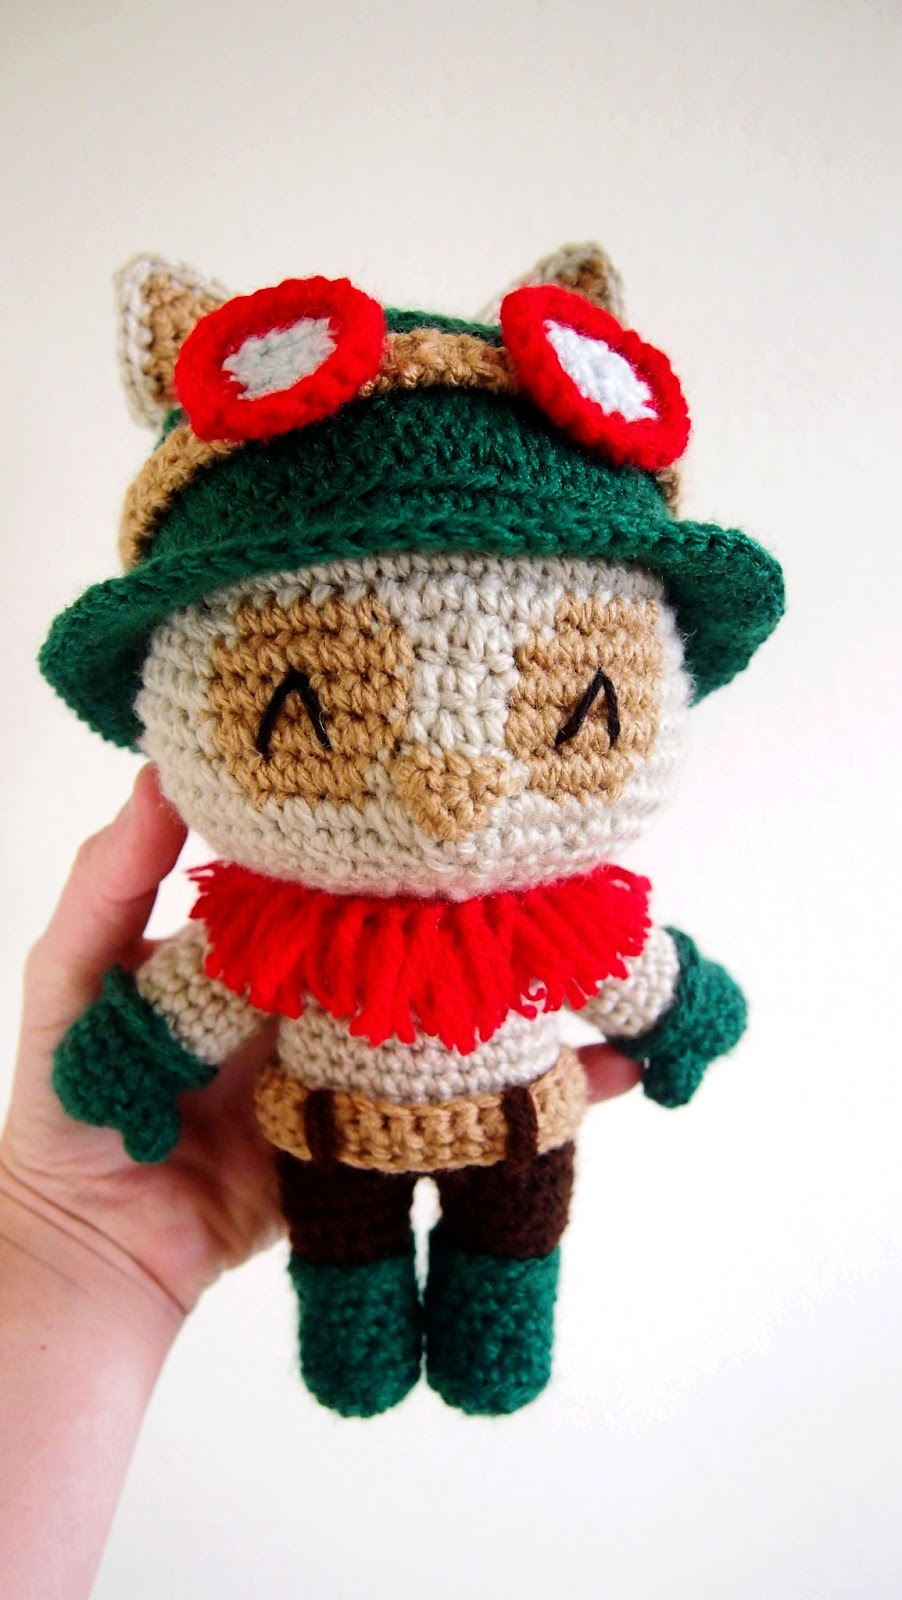 sol de noche deco crochet teemo of league of legends. Black Bedroom Furniture Sets. Home Design Ideas